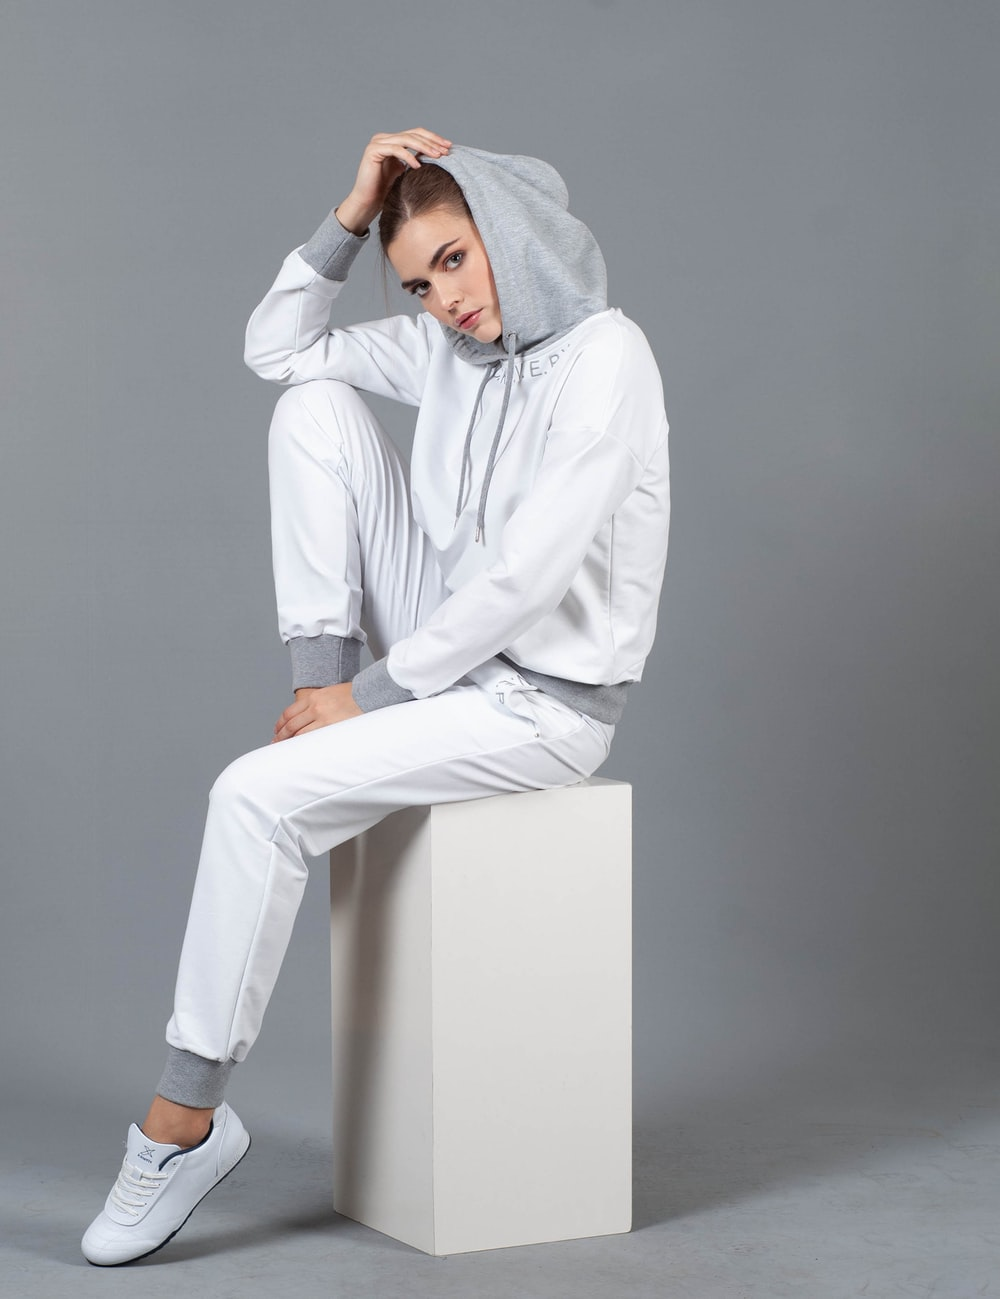 woman sitting on white box wearing hoodie holding her head